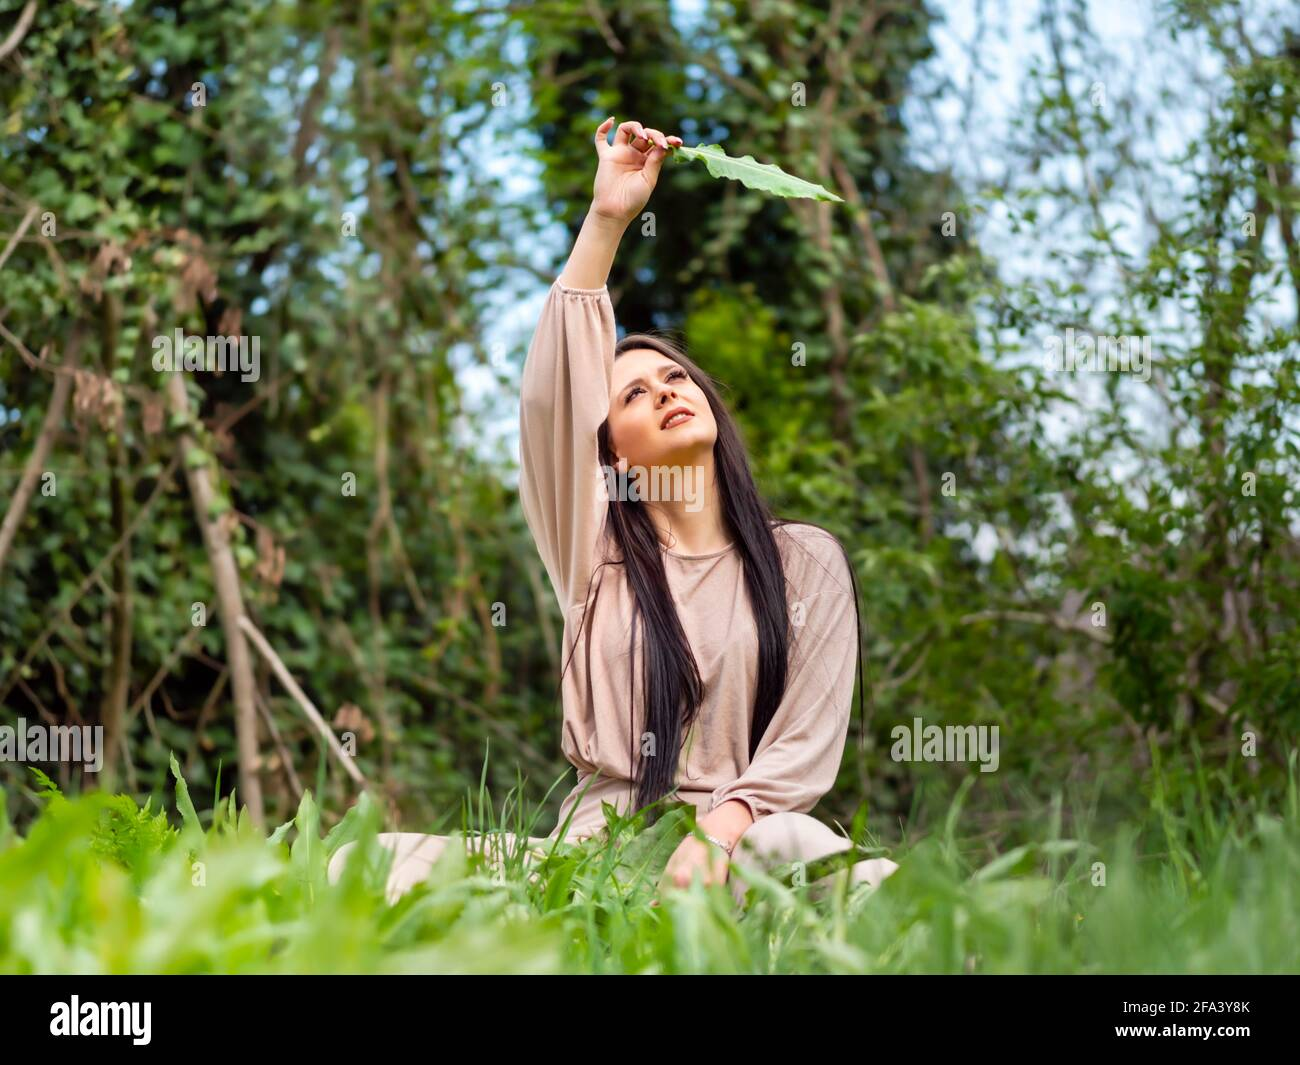 Young woman in nature hand holding single leaf high above head looking up upwards against sky sitting low view in vegetation in forest amongst trees Stock Photo